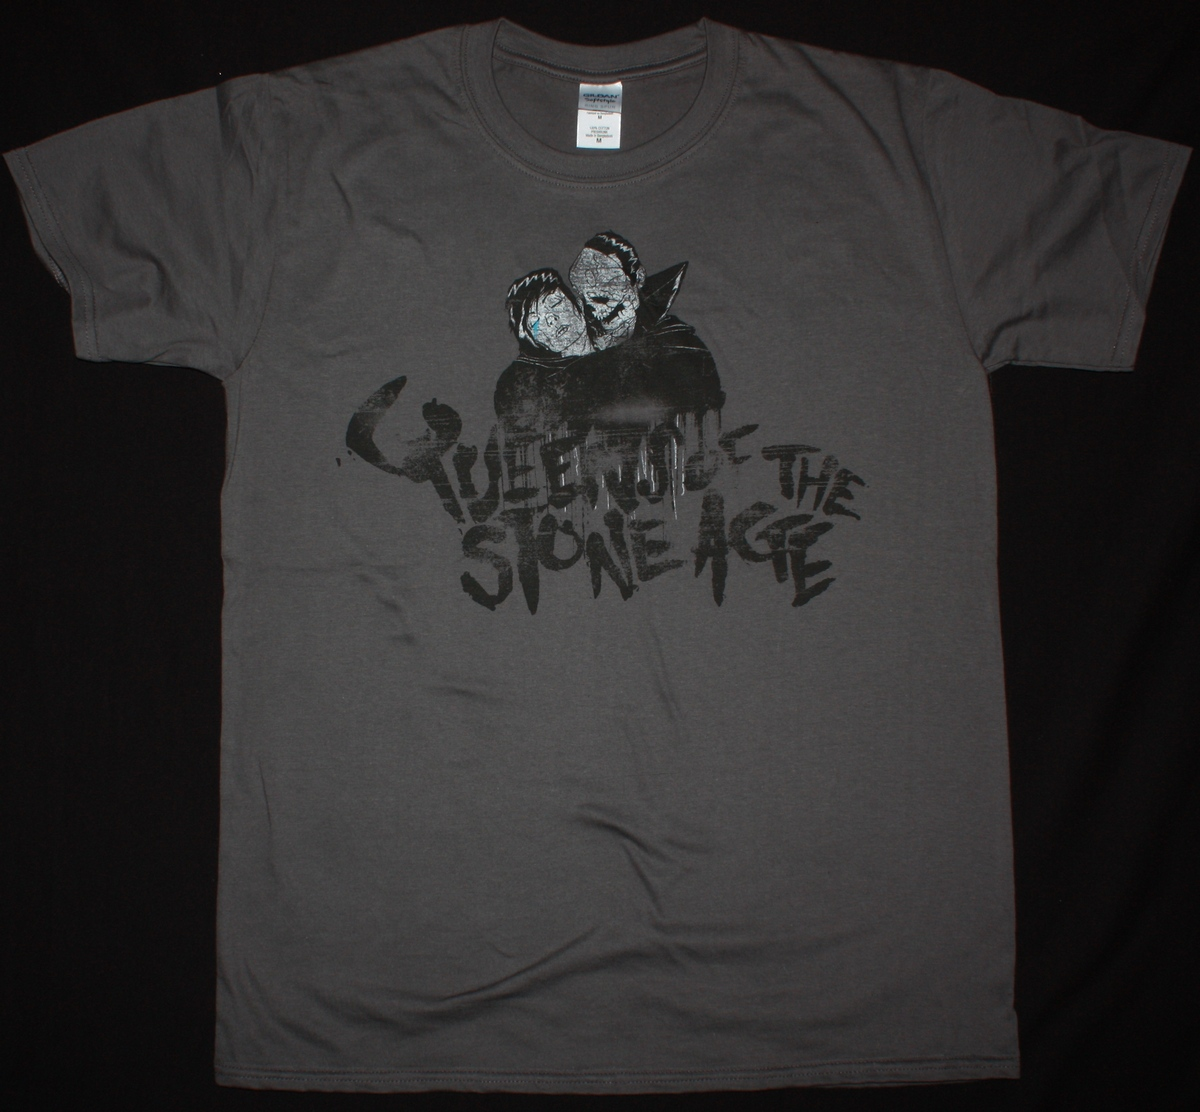 QUEENS OF THE STONE AGE LIKE CLOCKWORK NEW GREY T-SHIRT